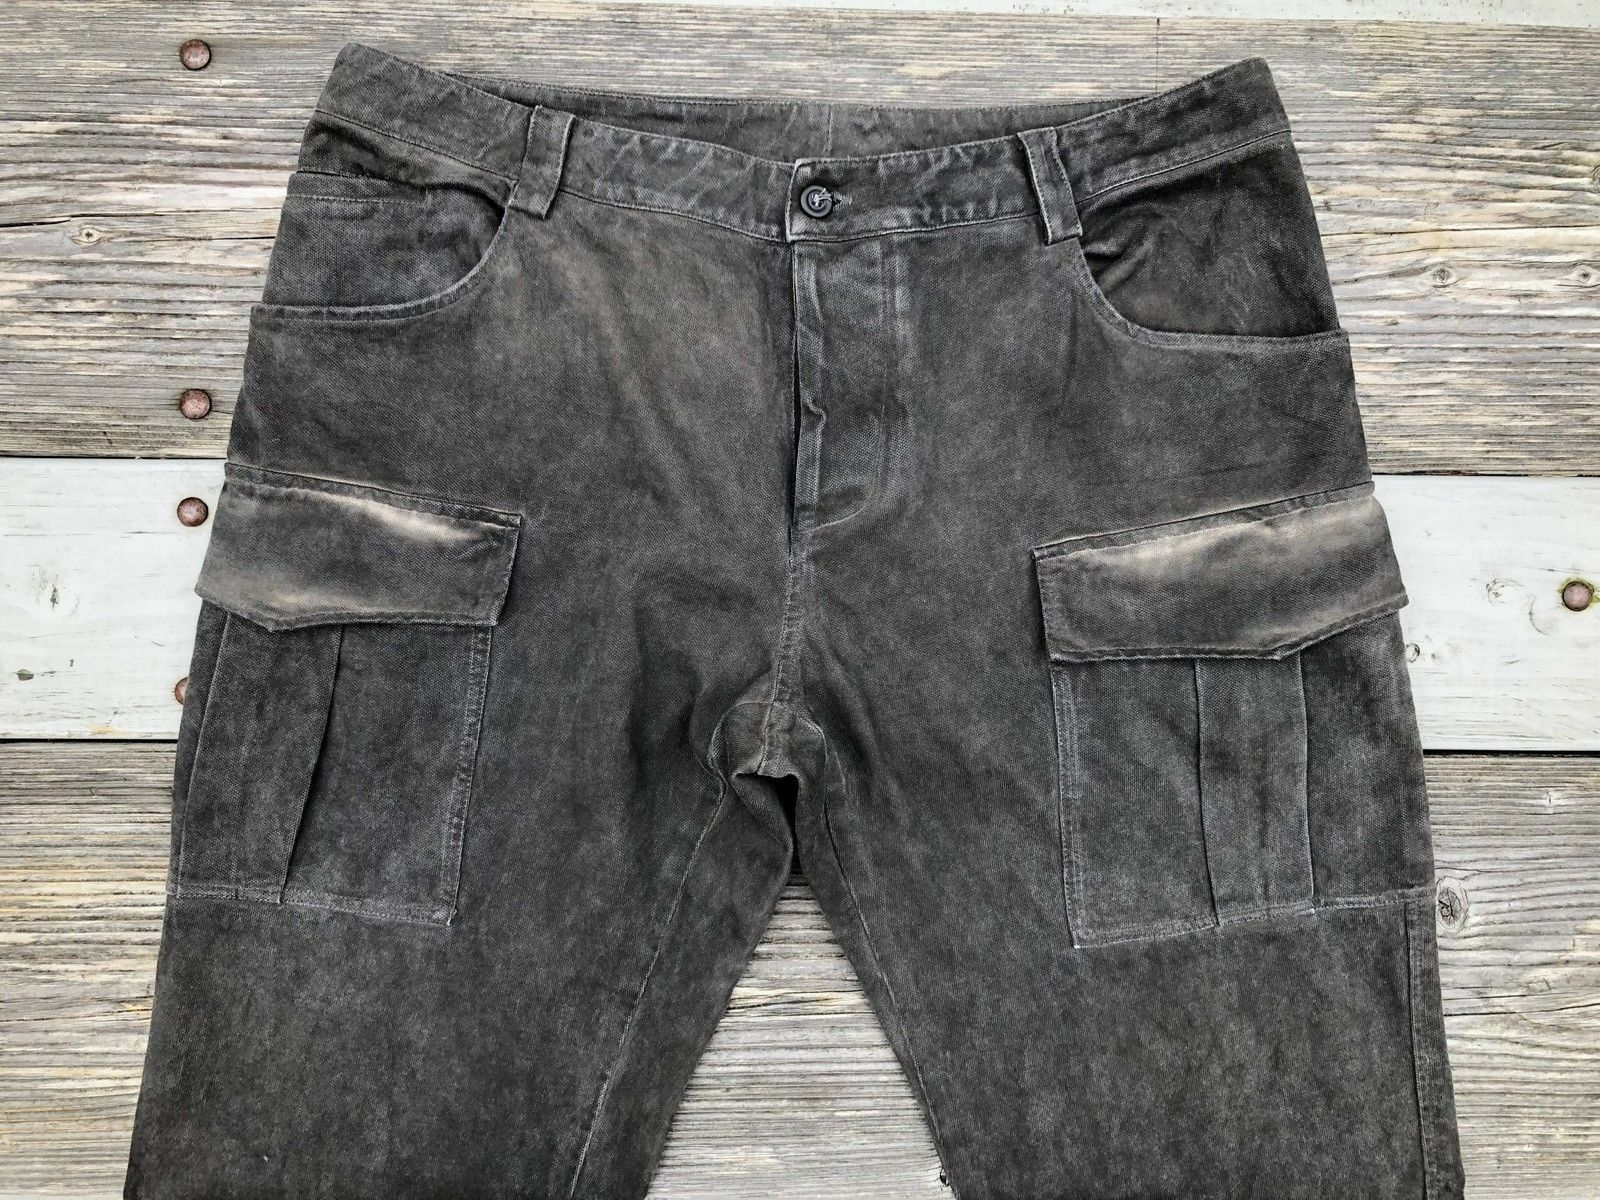 Mauro Taliani Jeans 35x36 Cargo Military Slim Tapered legs Made in  authent